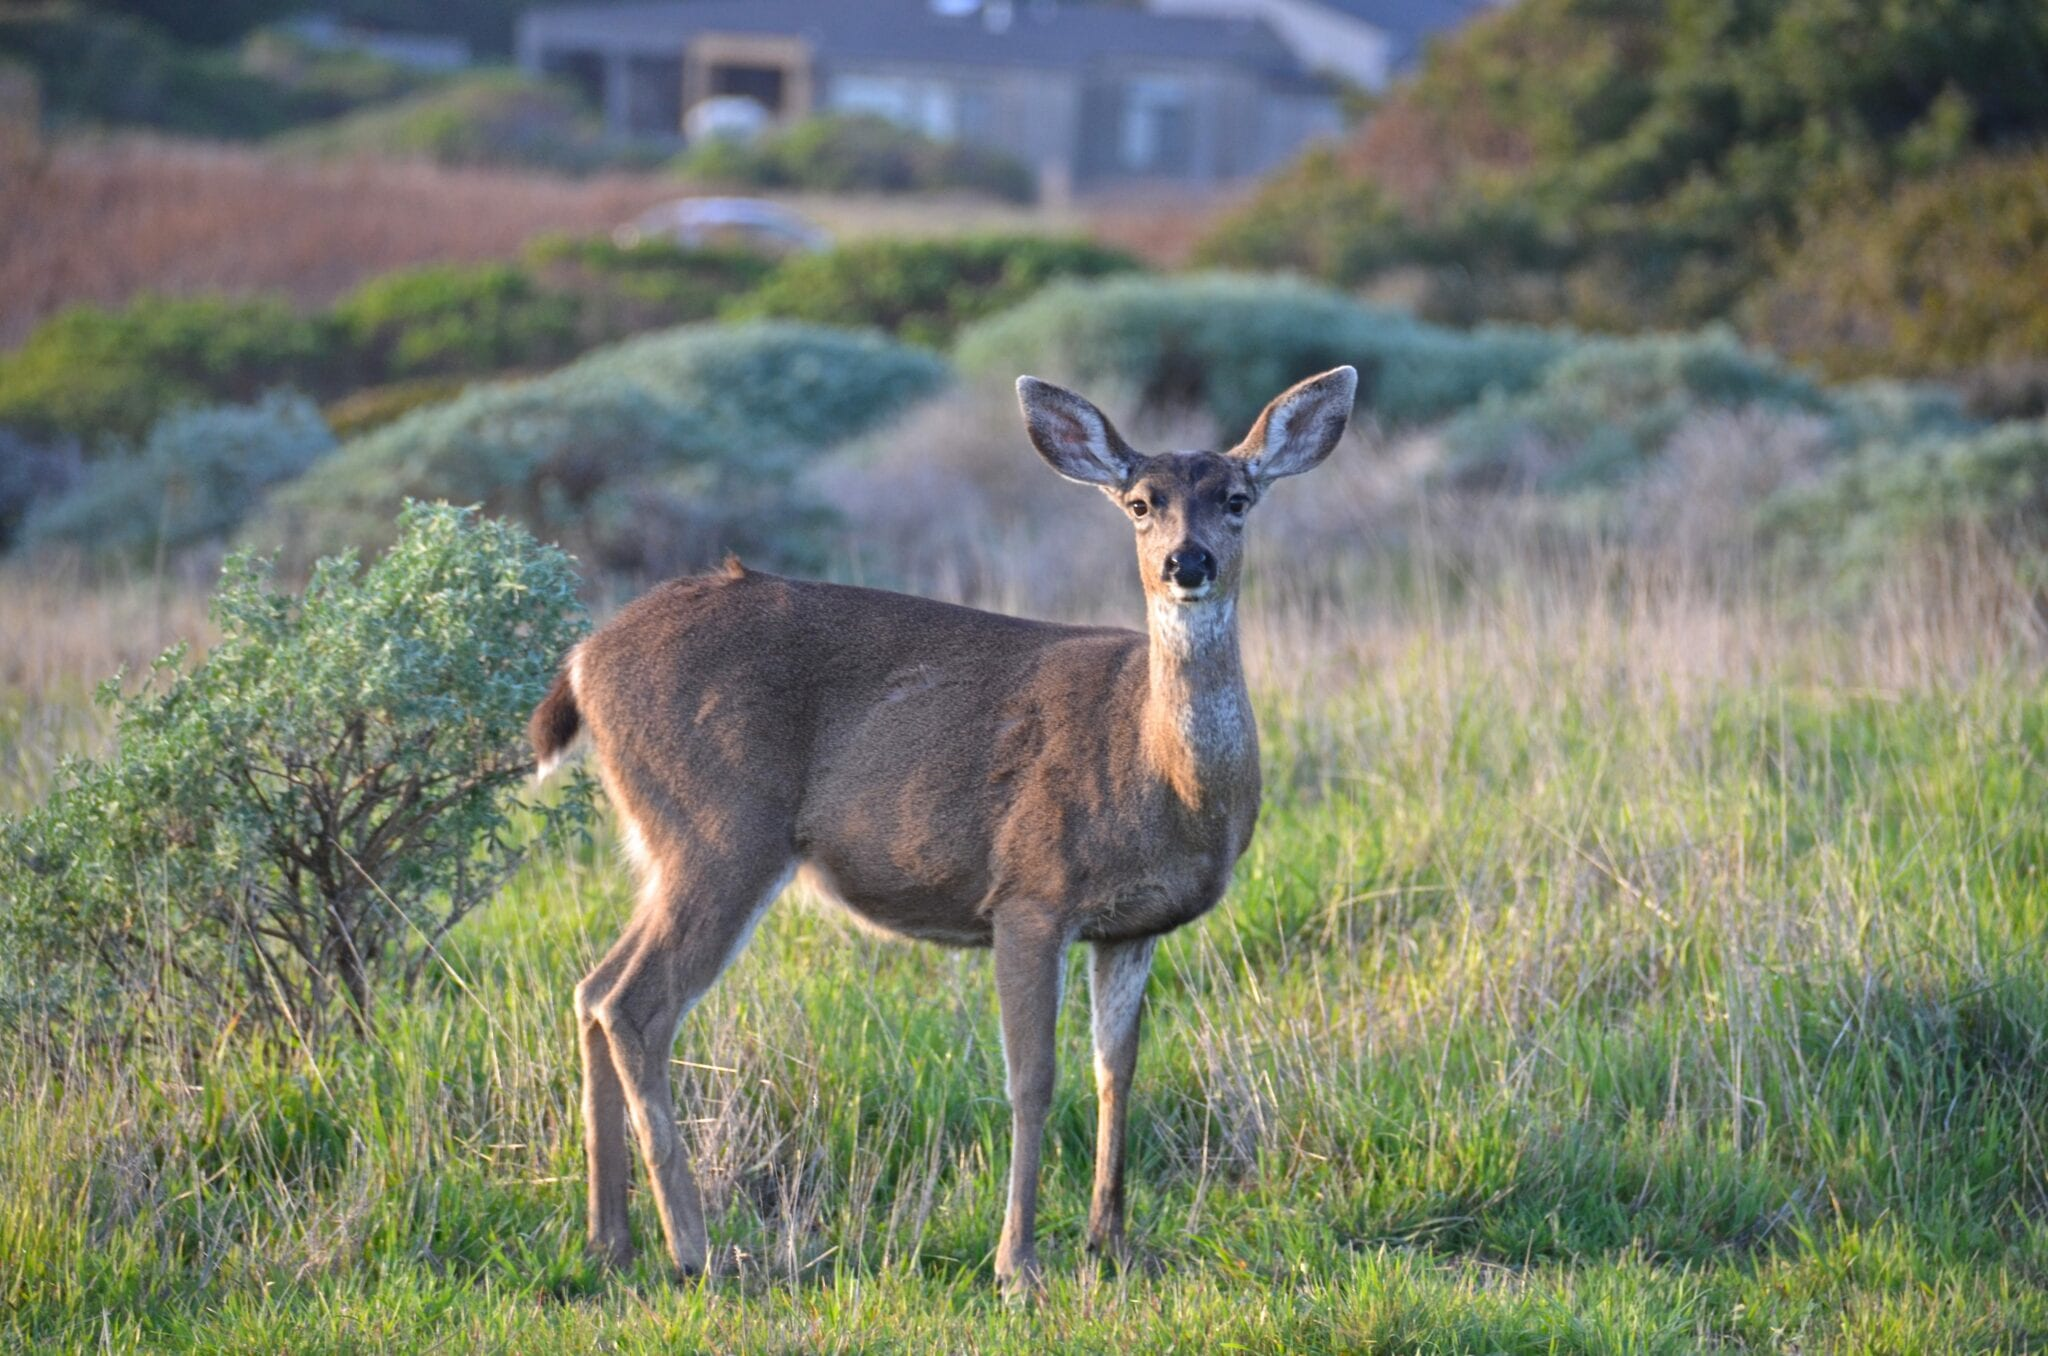 Sea Ranch Oceanfront, Abalone Bay, deer